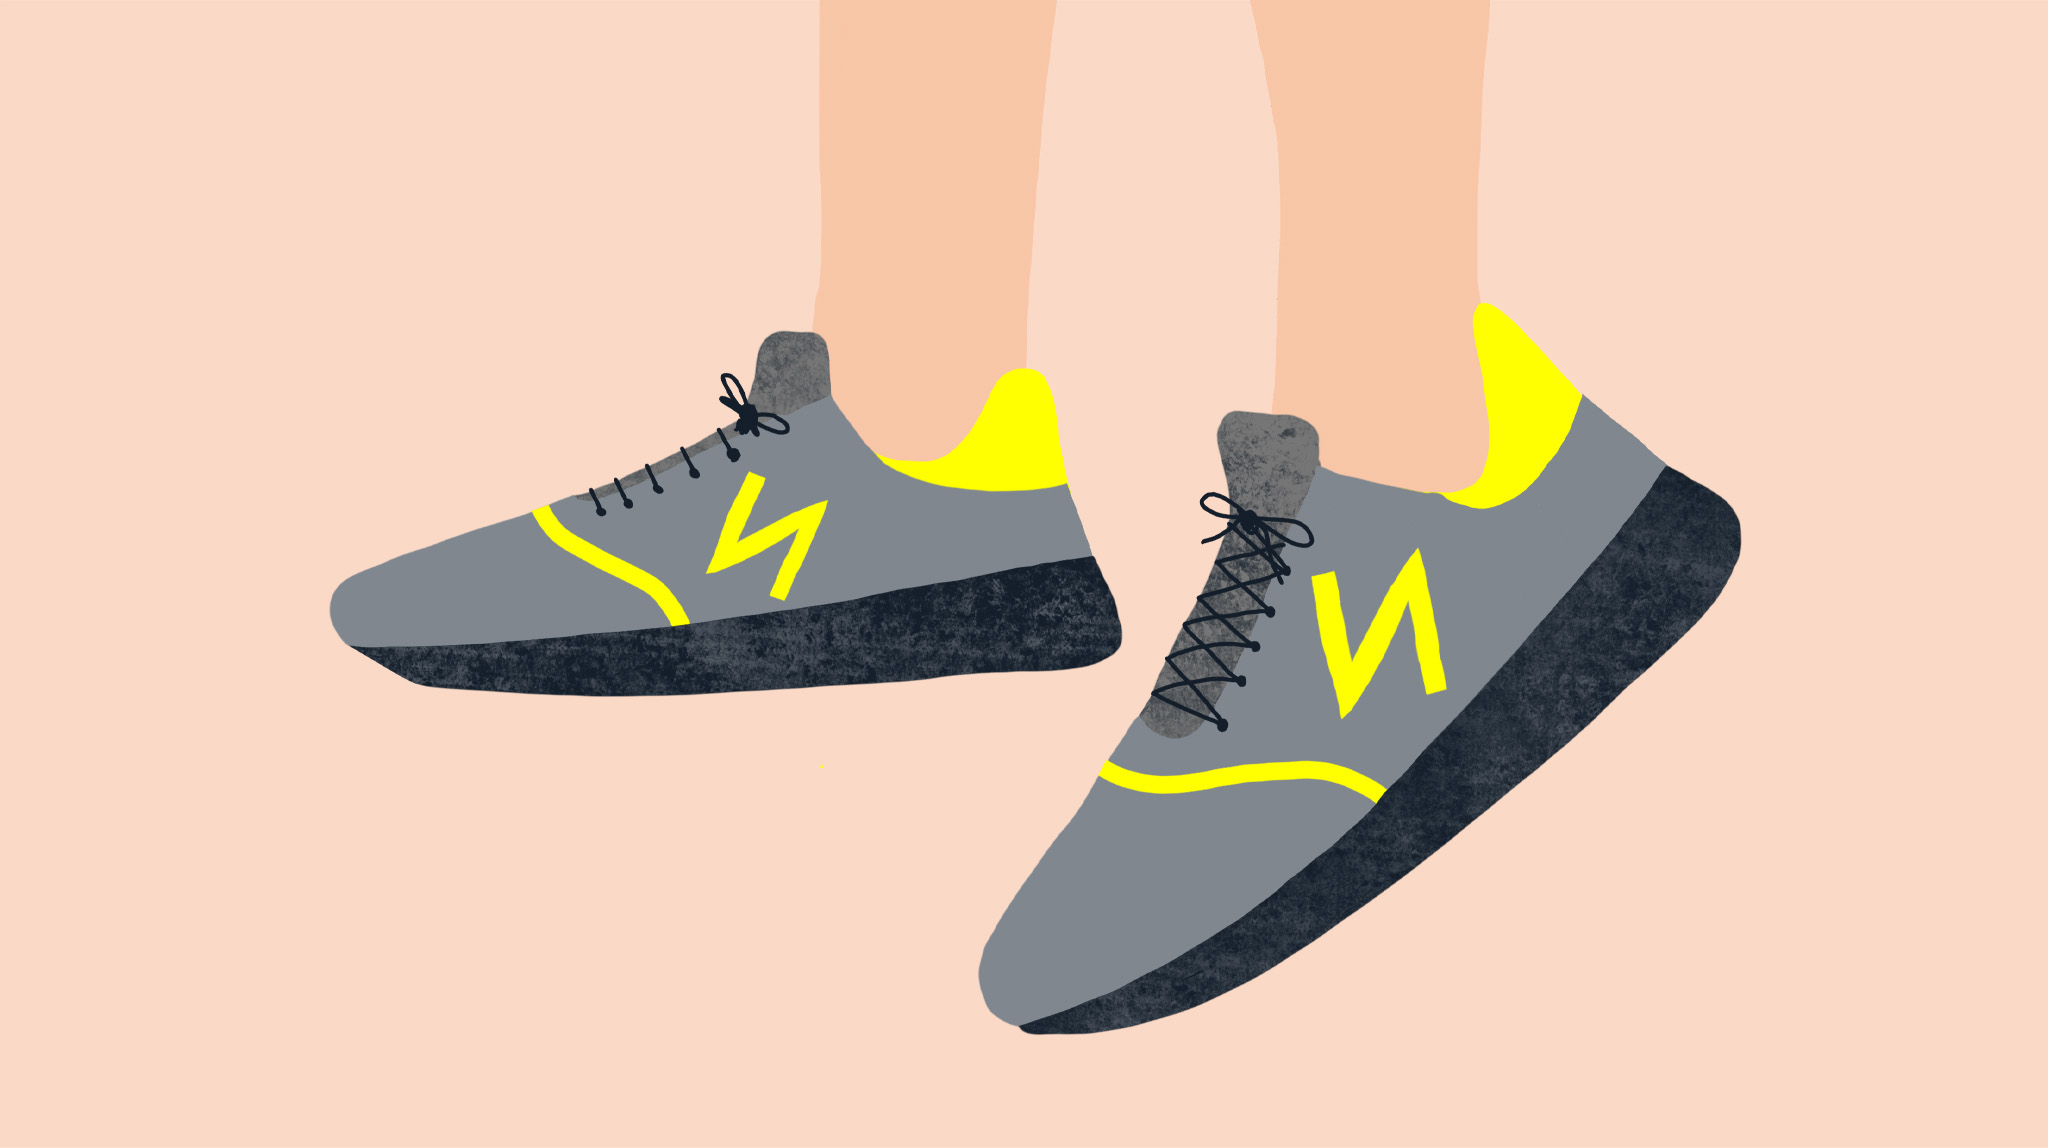 Illustration by MA通信设计 student Charlotte Johnston showing trainers with a yellow N on